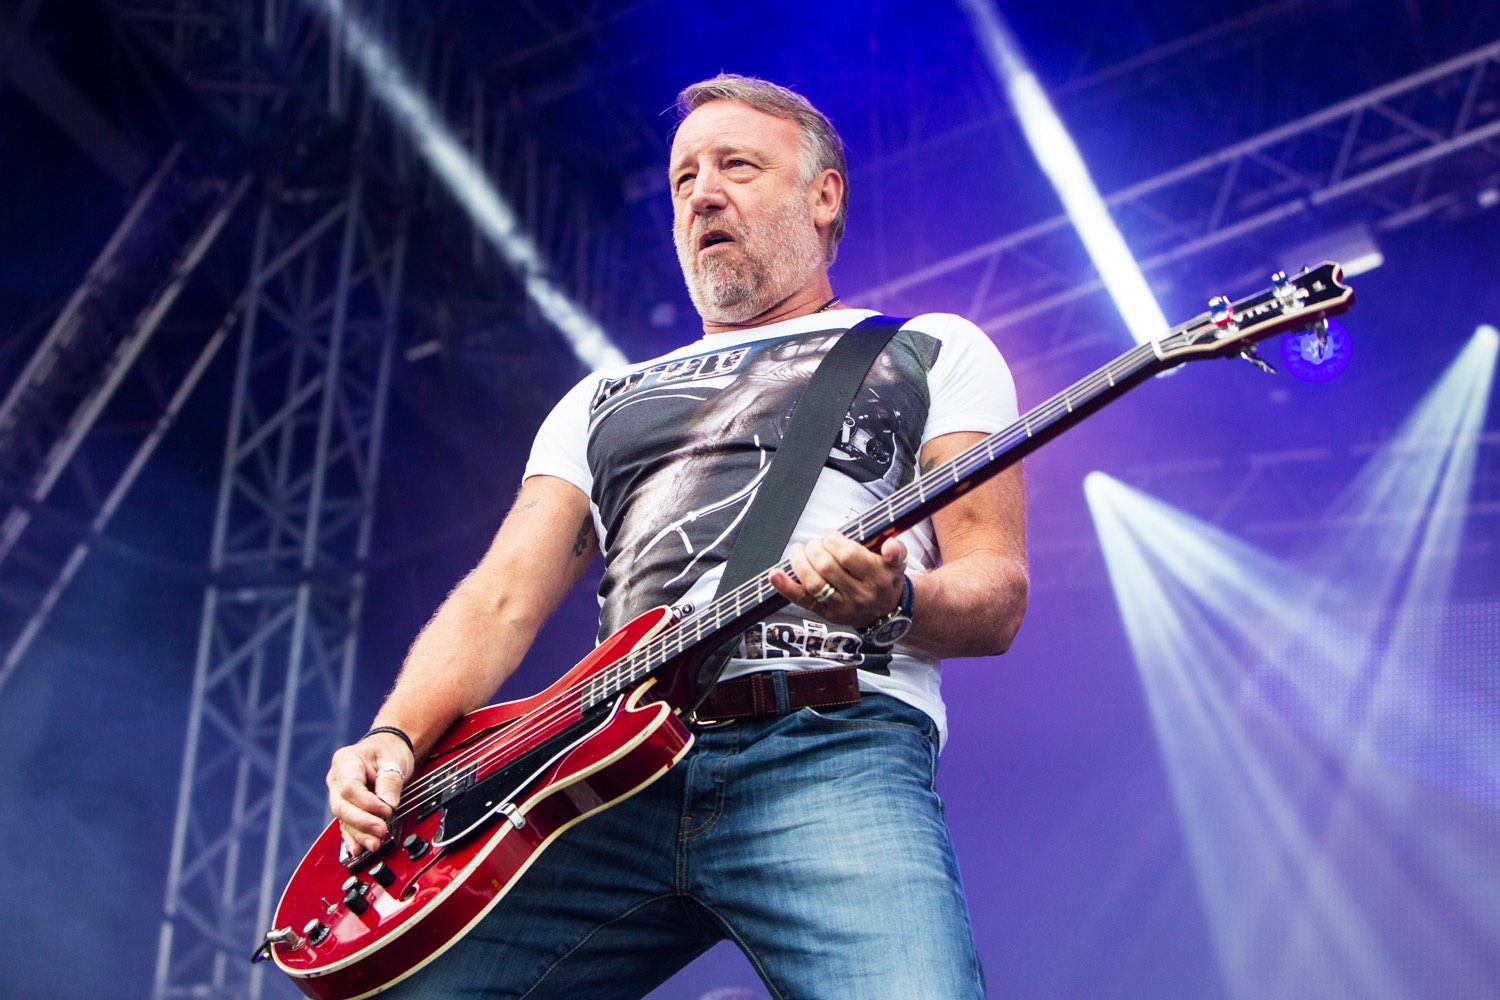 Intervista Peter Hook a Pordenone il 29.08.19  +english version